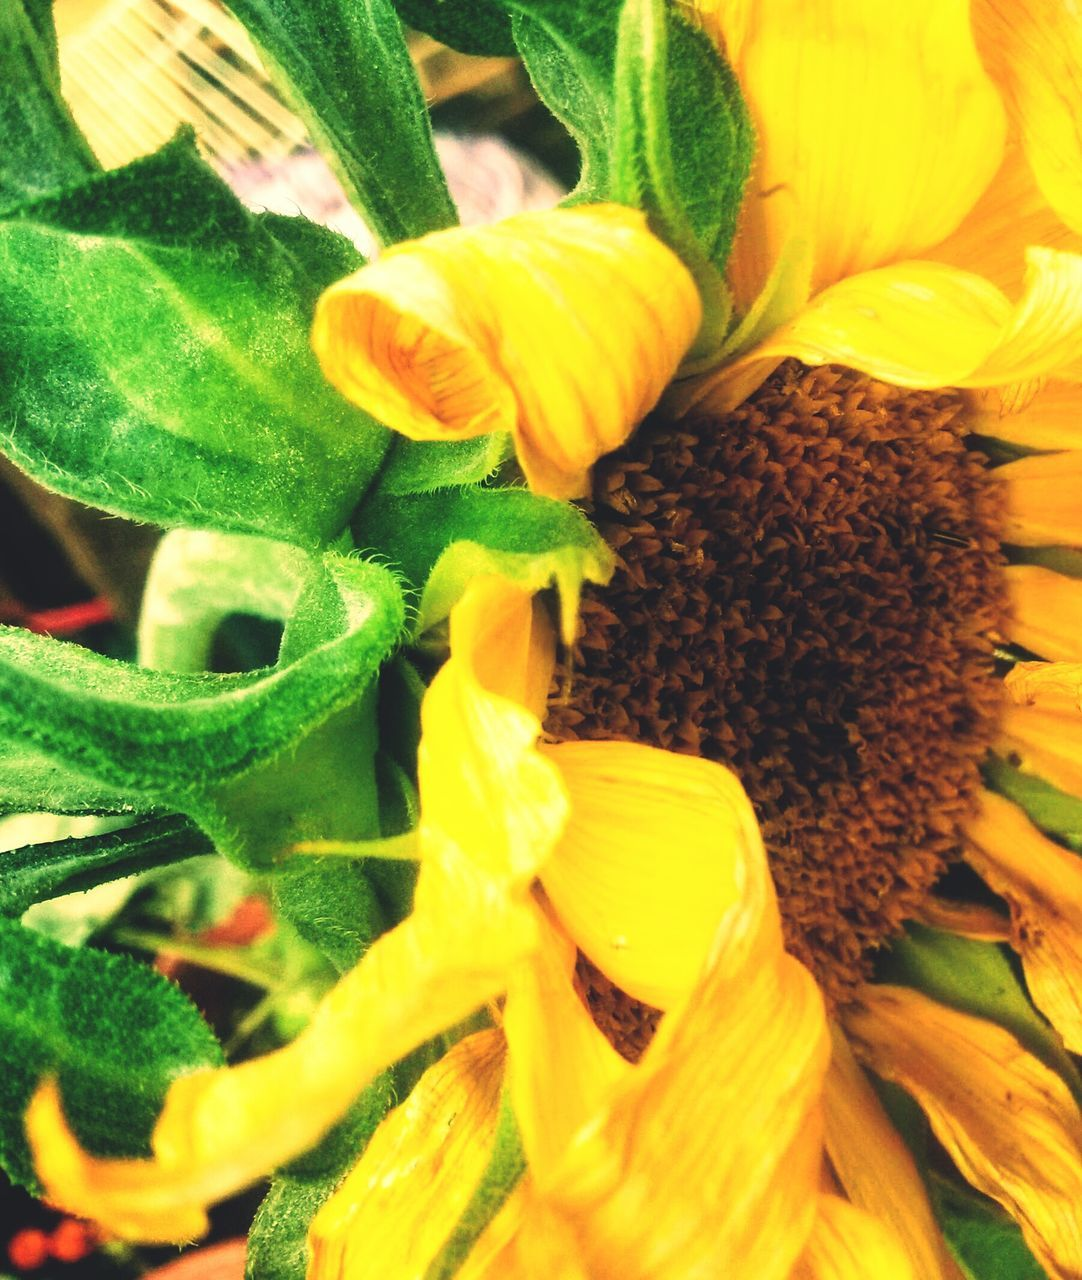 flower, freshness, growth, plant, petal, yellow, fragility, nature, leaf, beauty in nature, sunflower, no people, close-up, flower head, green color, food, vegetable, outdoors, day